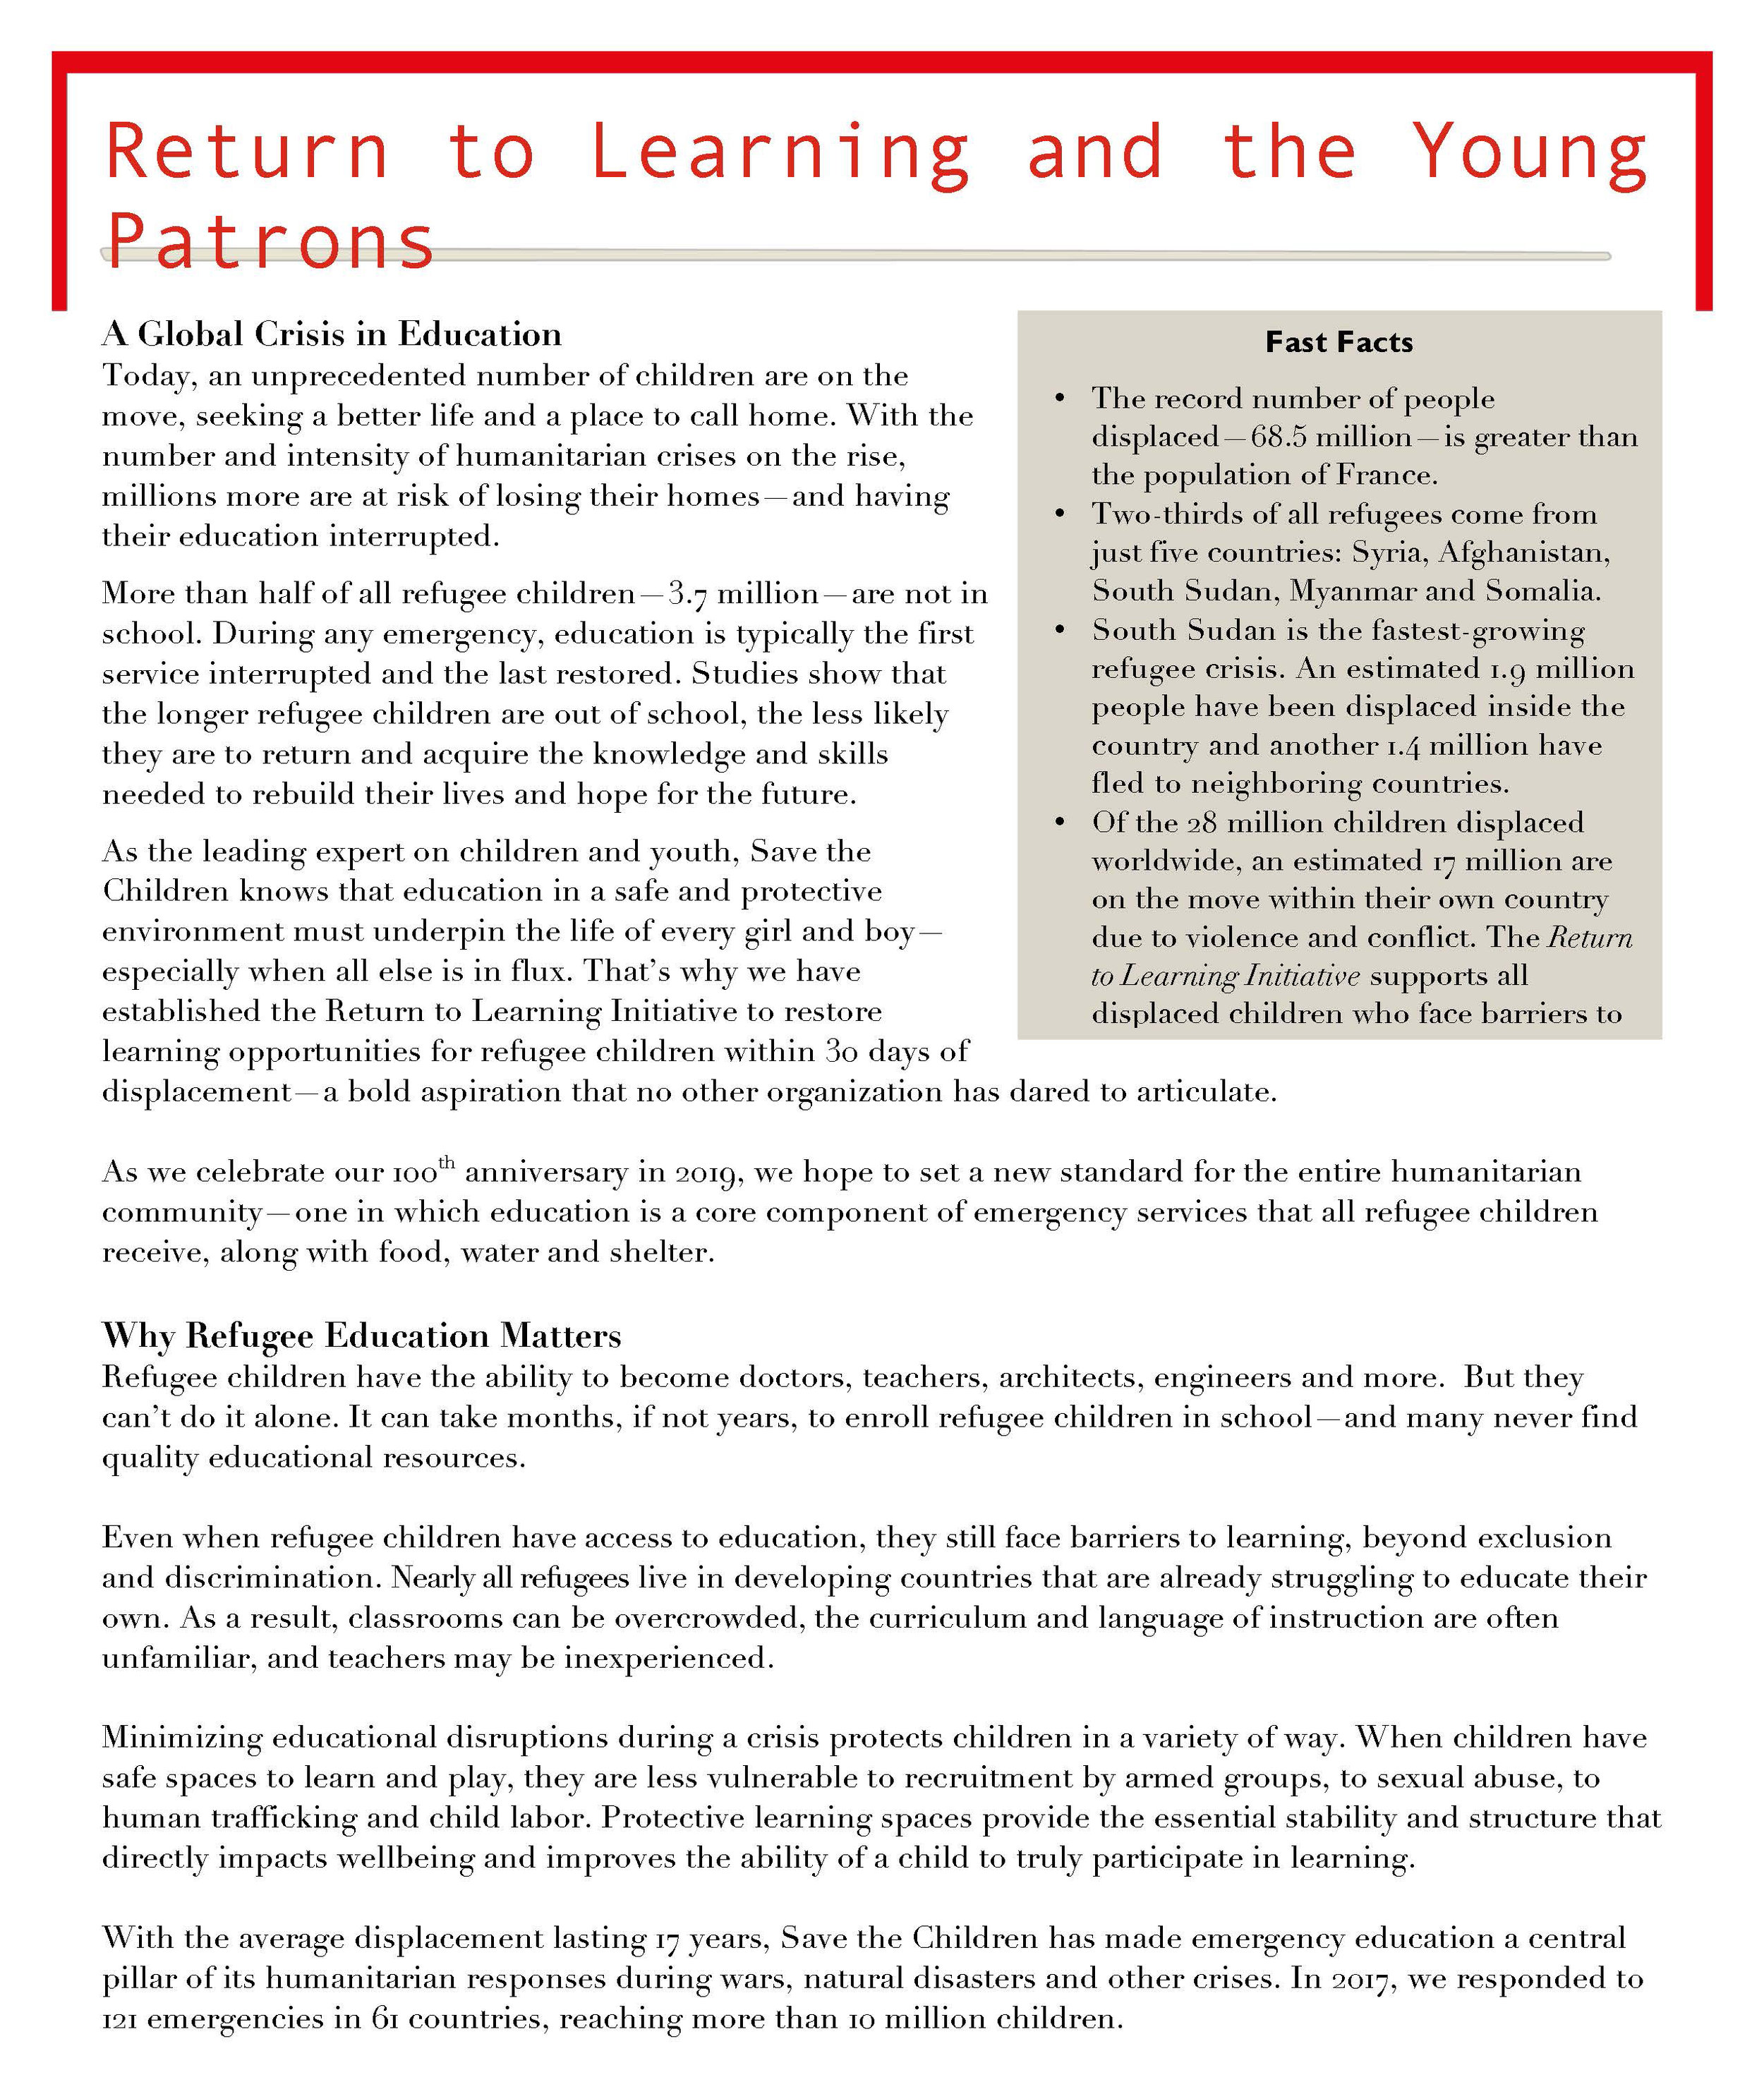 Return to Learning concept note_Page_3.jpg